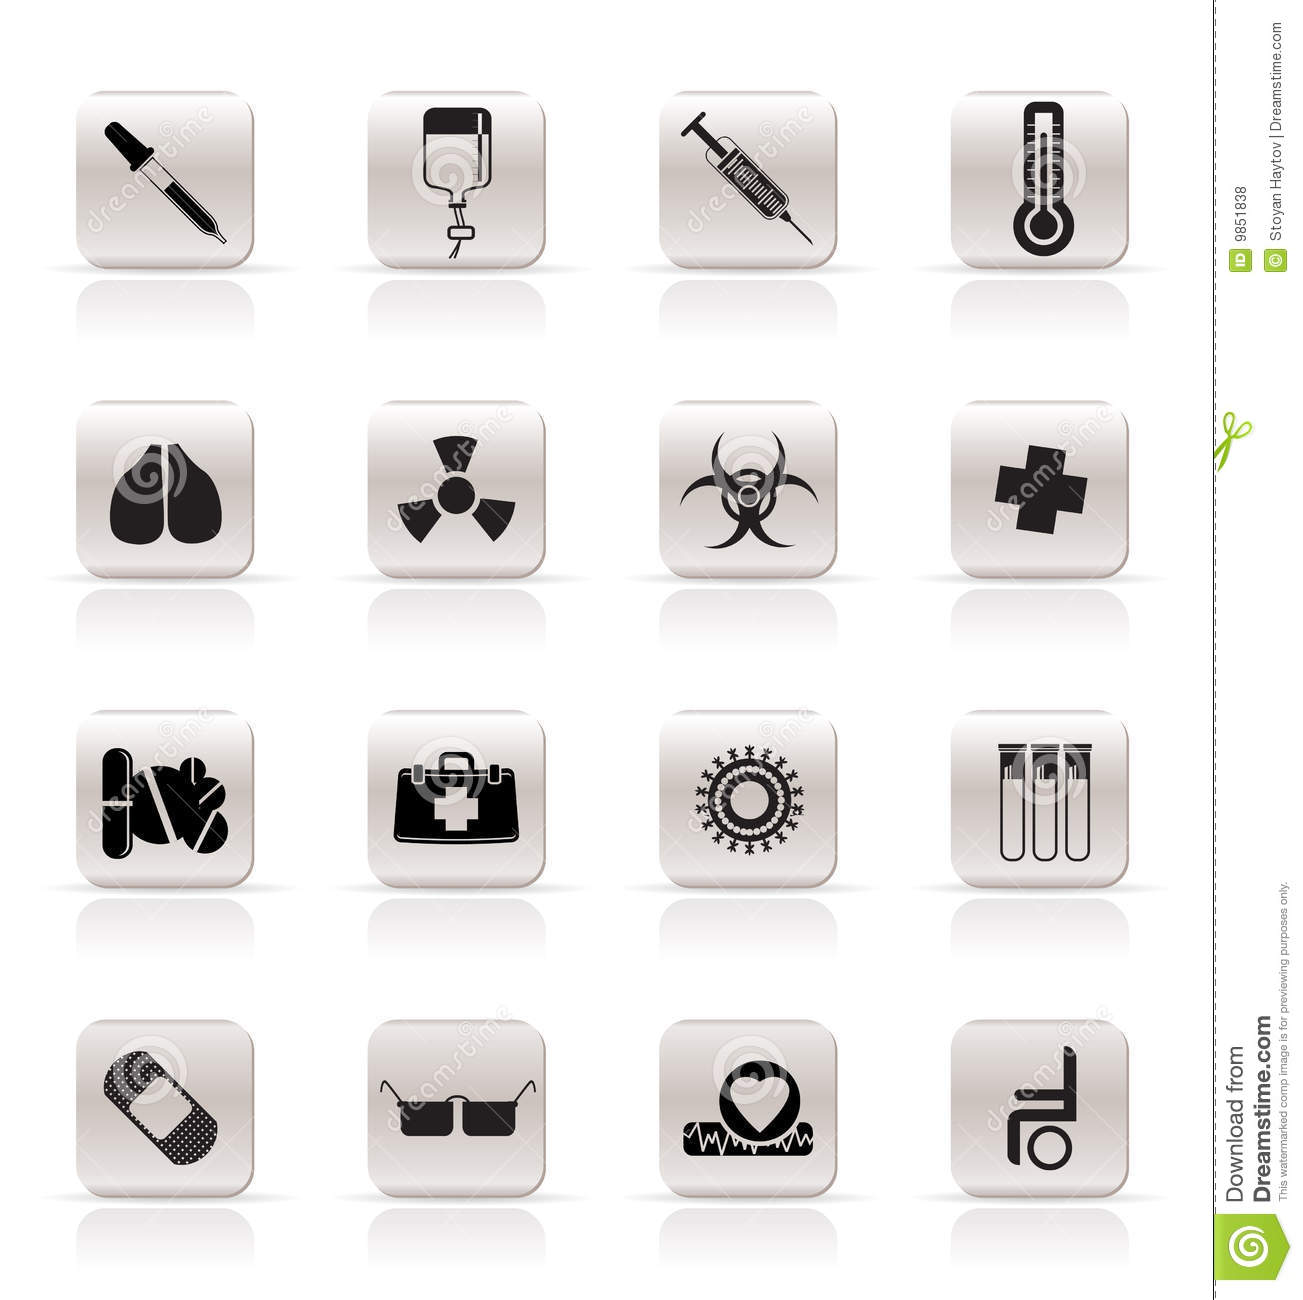 Medical Icons Royalty Free Stock Photos - Image: 9851838